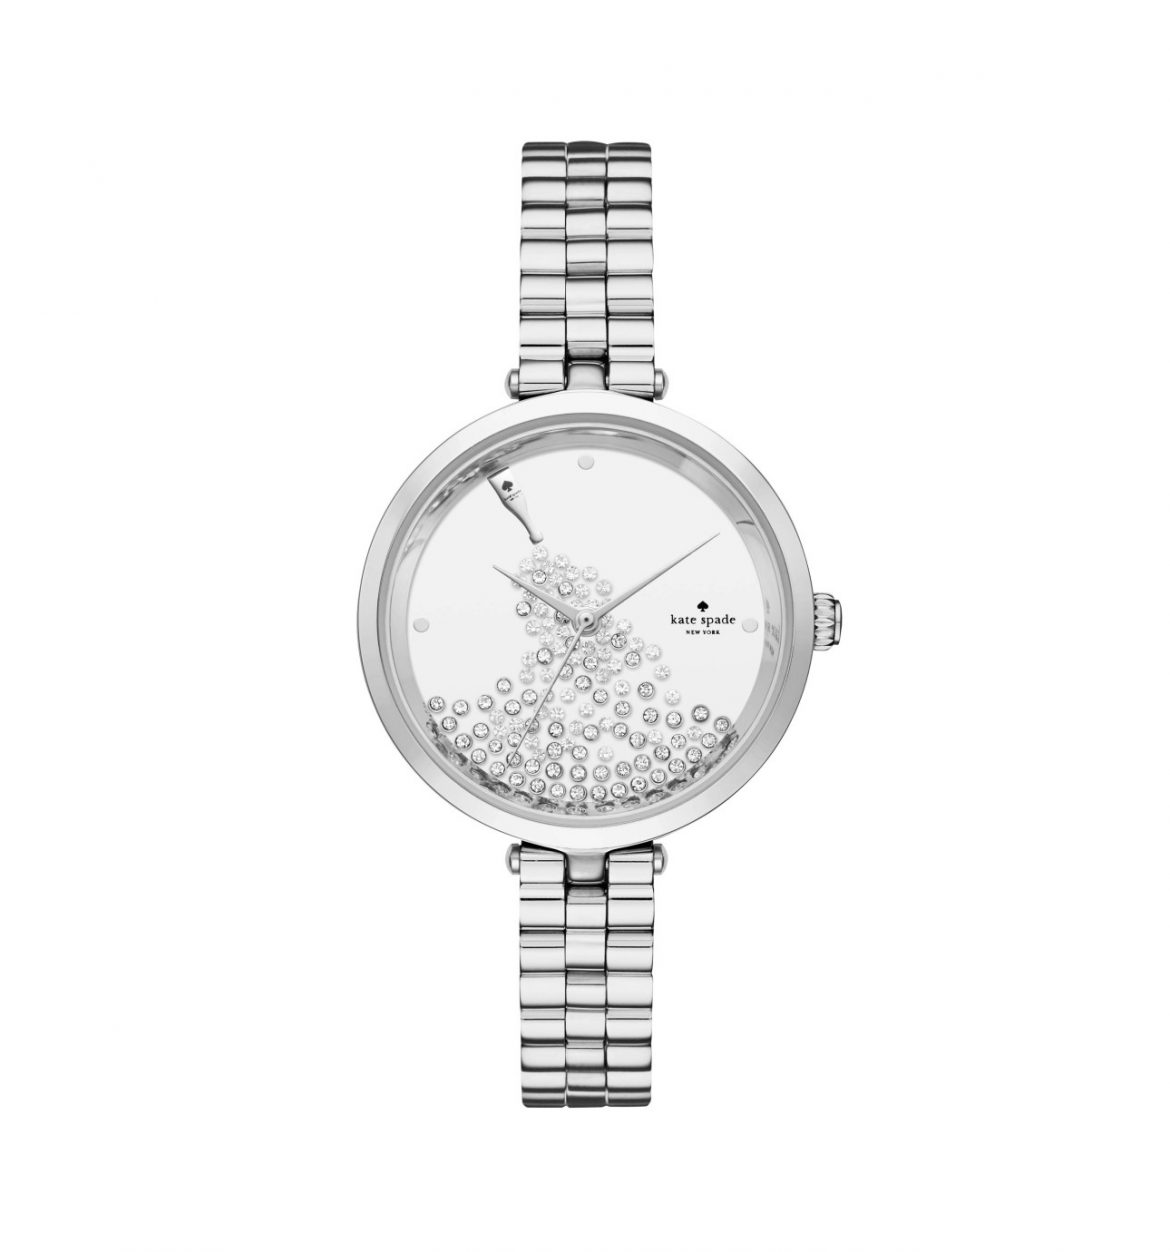 Kate Spade Holland Silver Stainless Steel Watch